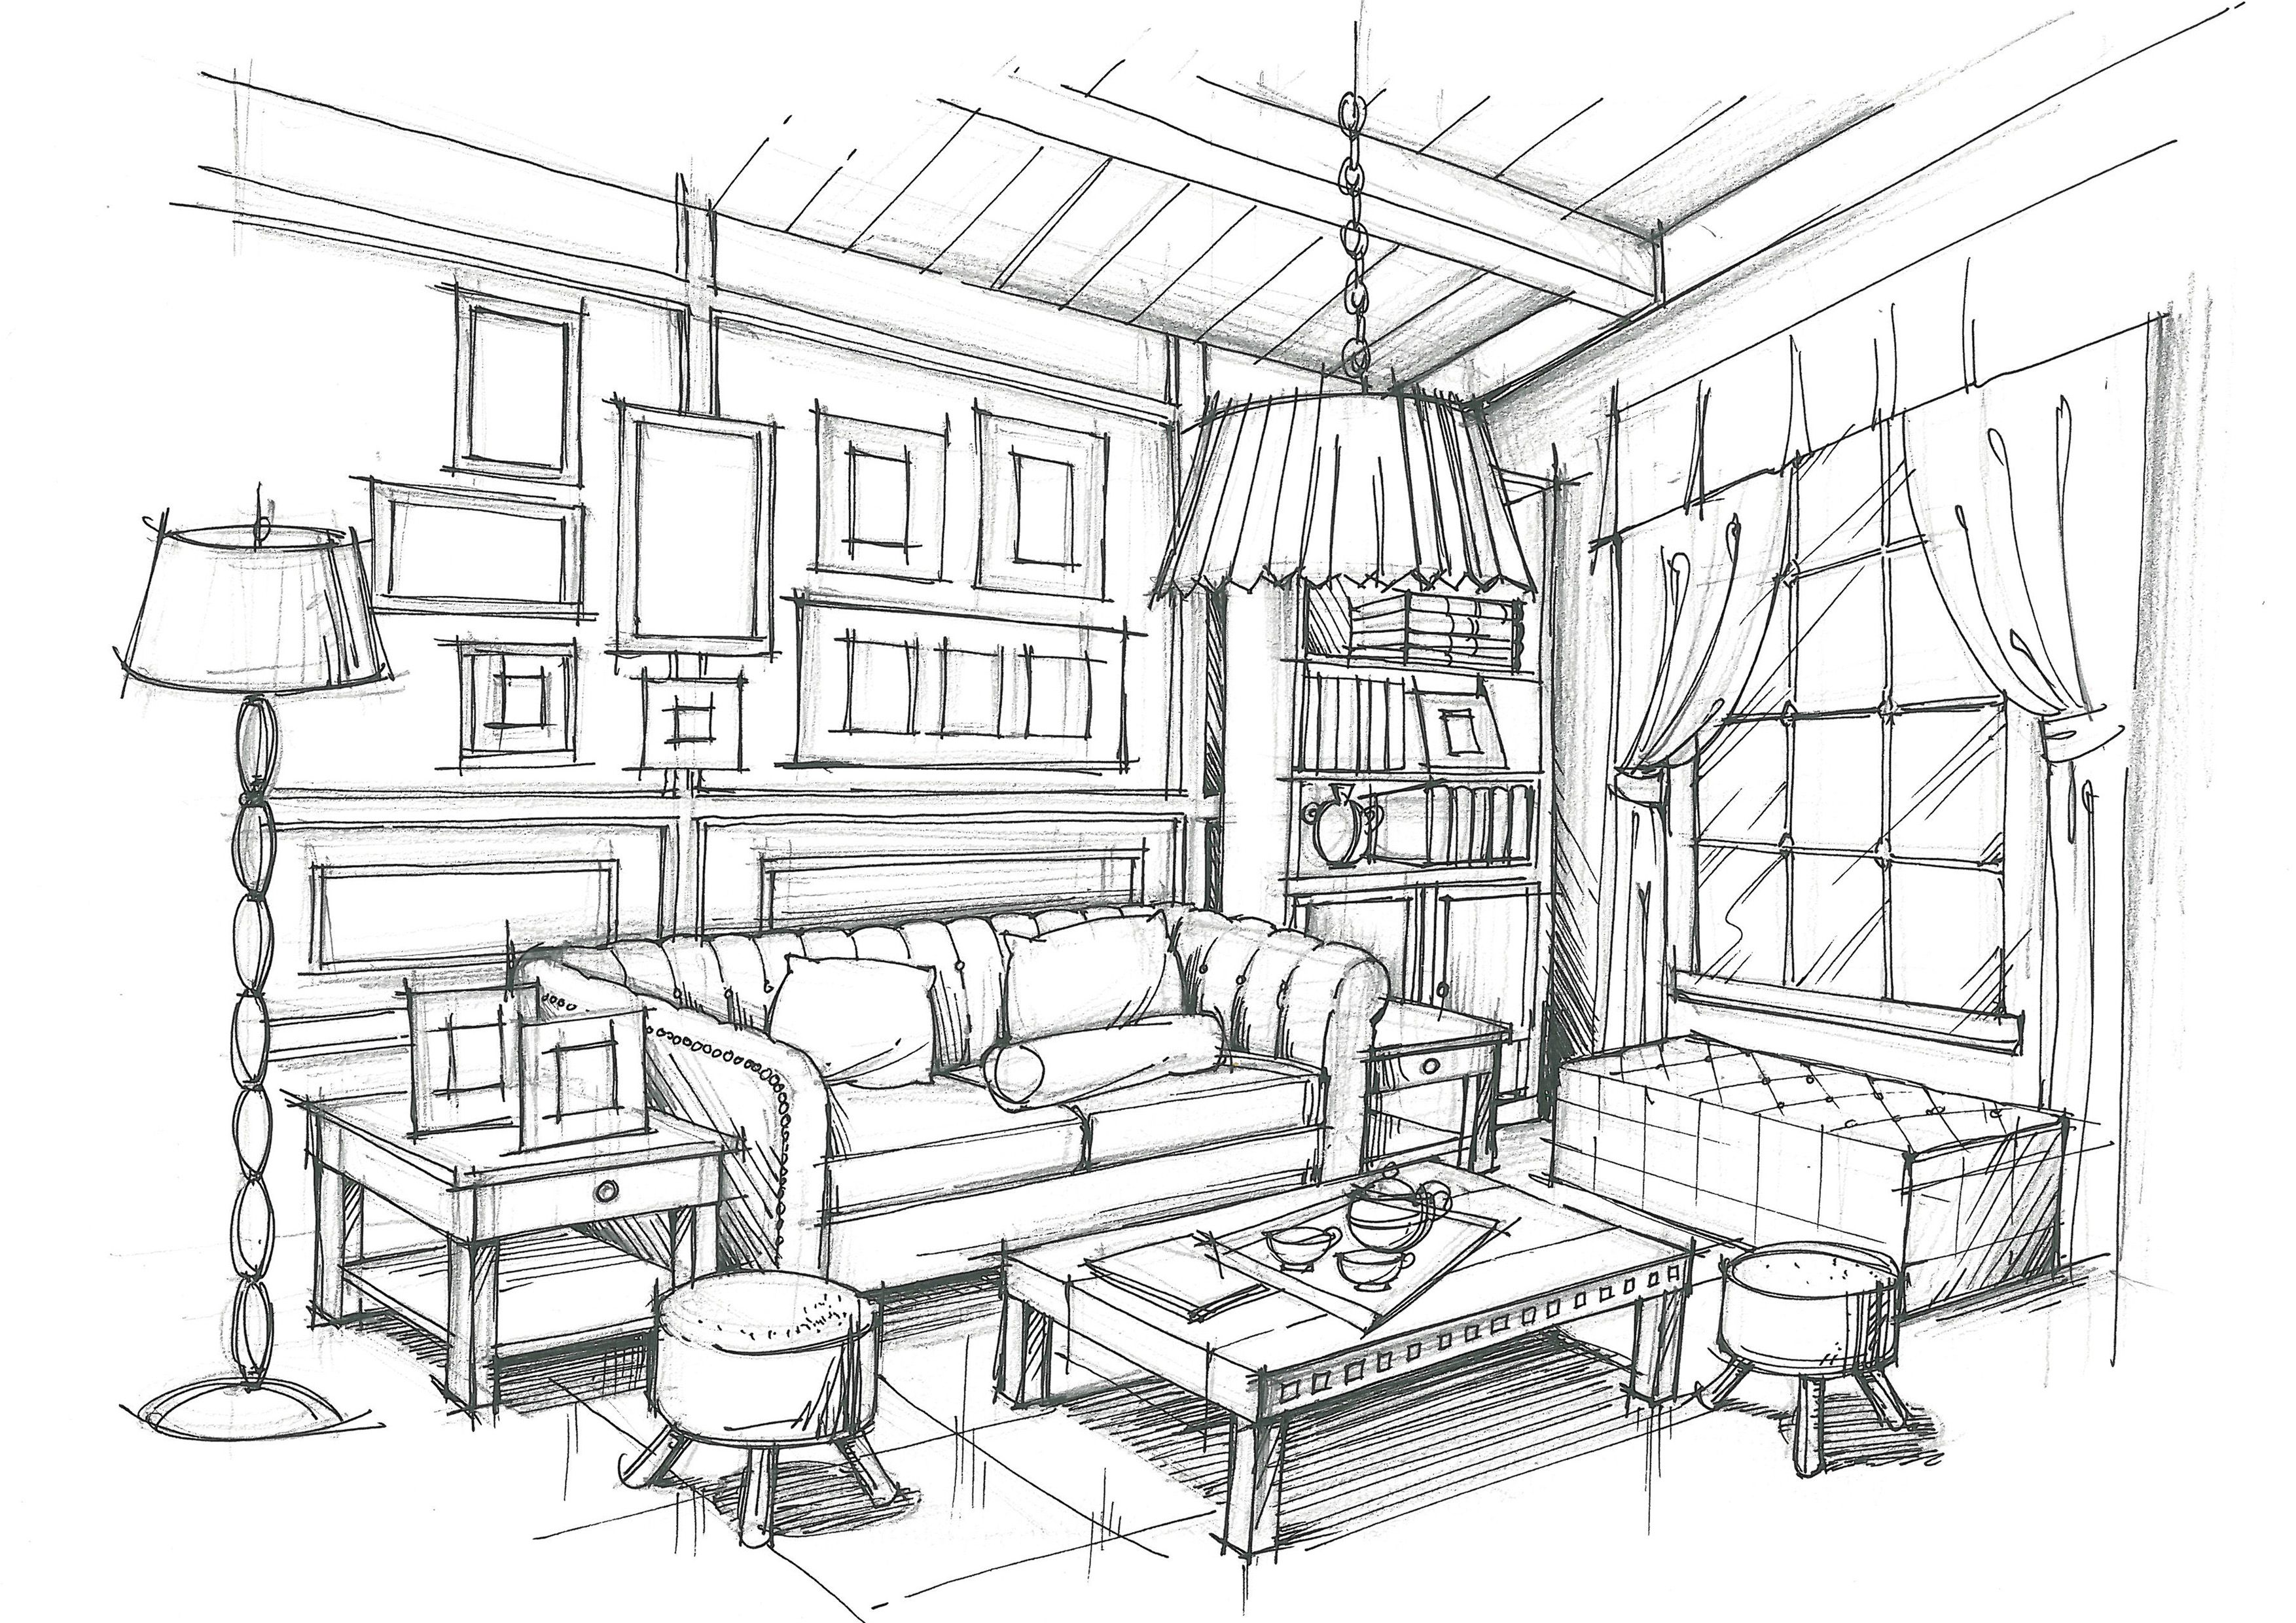 Living room room ideas interior design sketches room - One point perspective living room sketch ...